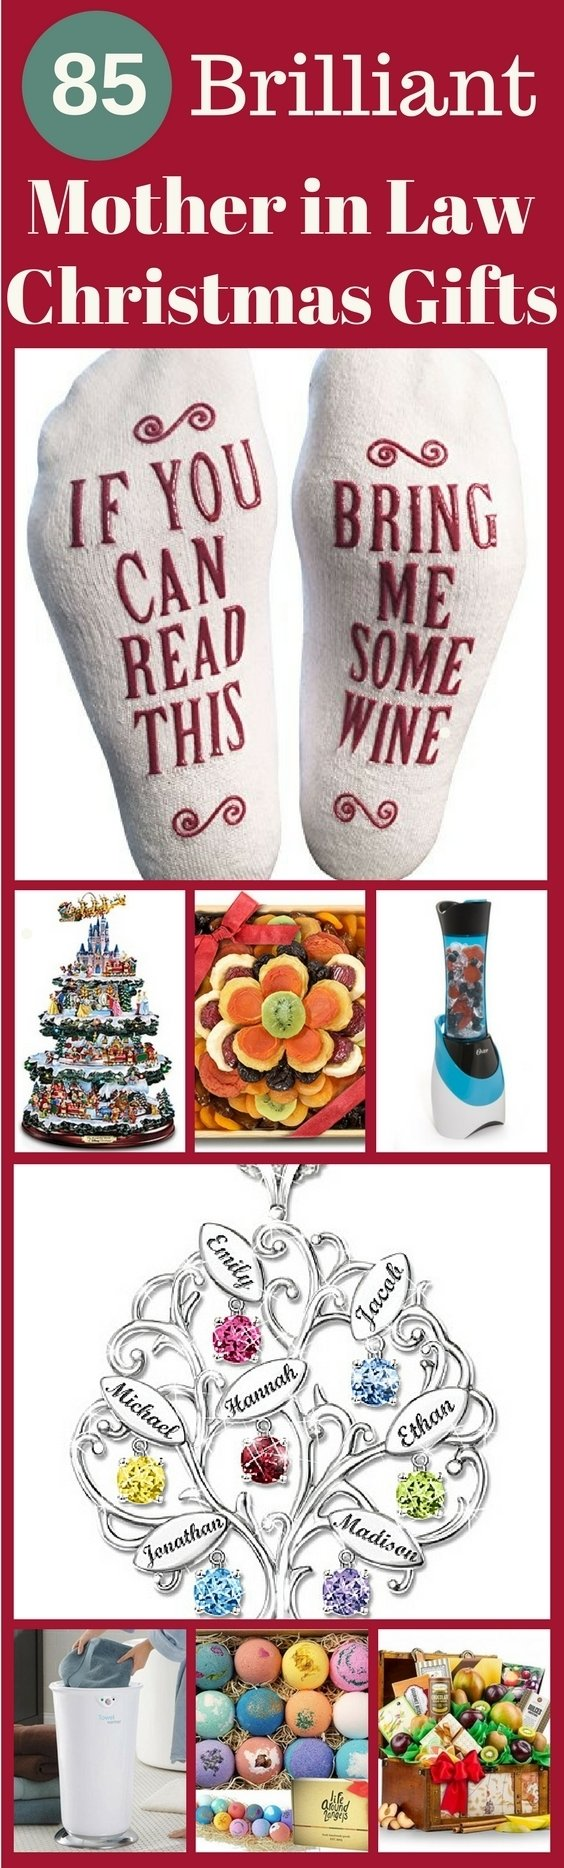 10 Lovely Mother In Law Christmas Gift Ideas